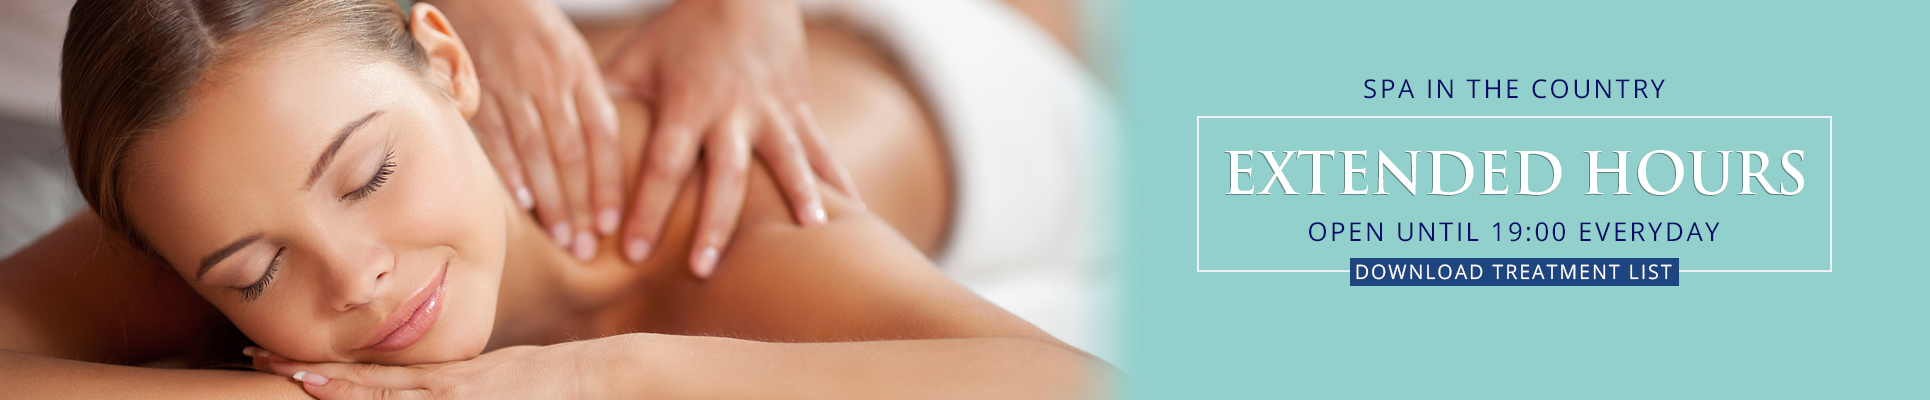 Spa in the Country Black Friday Treatment Specials